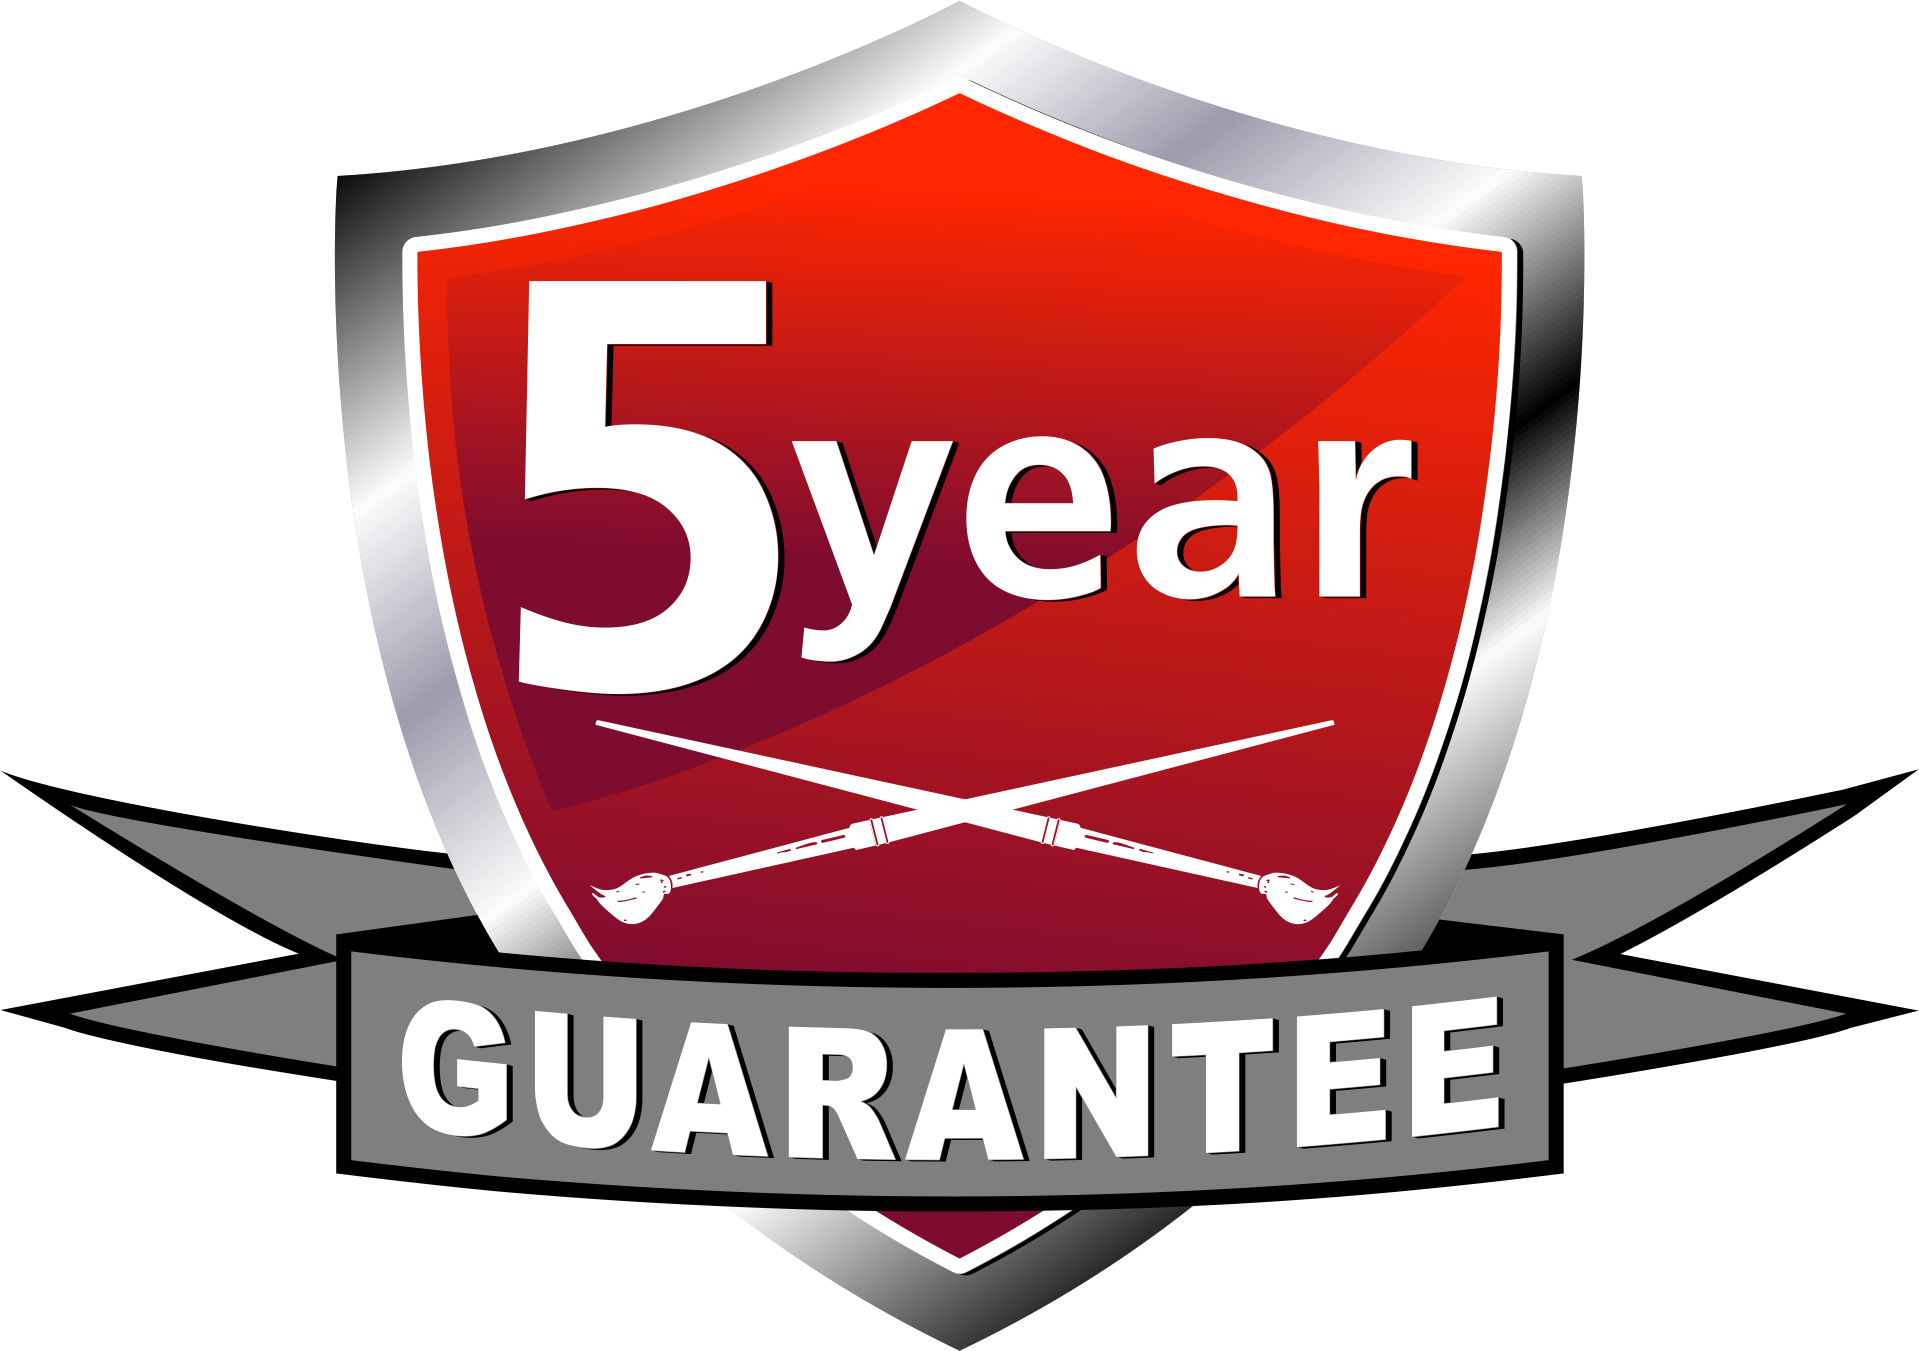 3-Year Guarantee